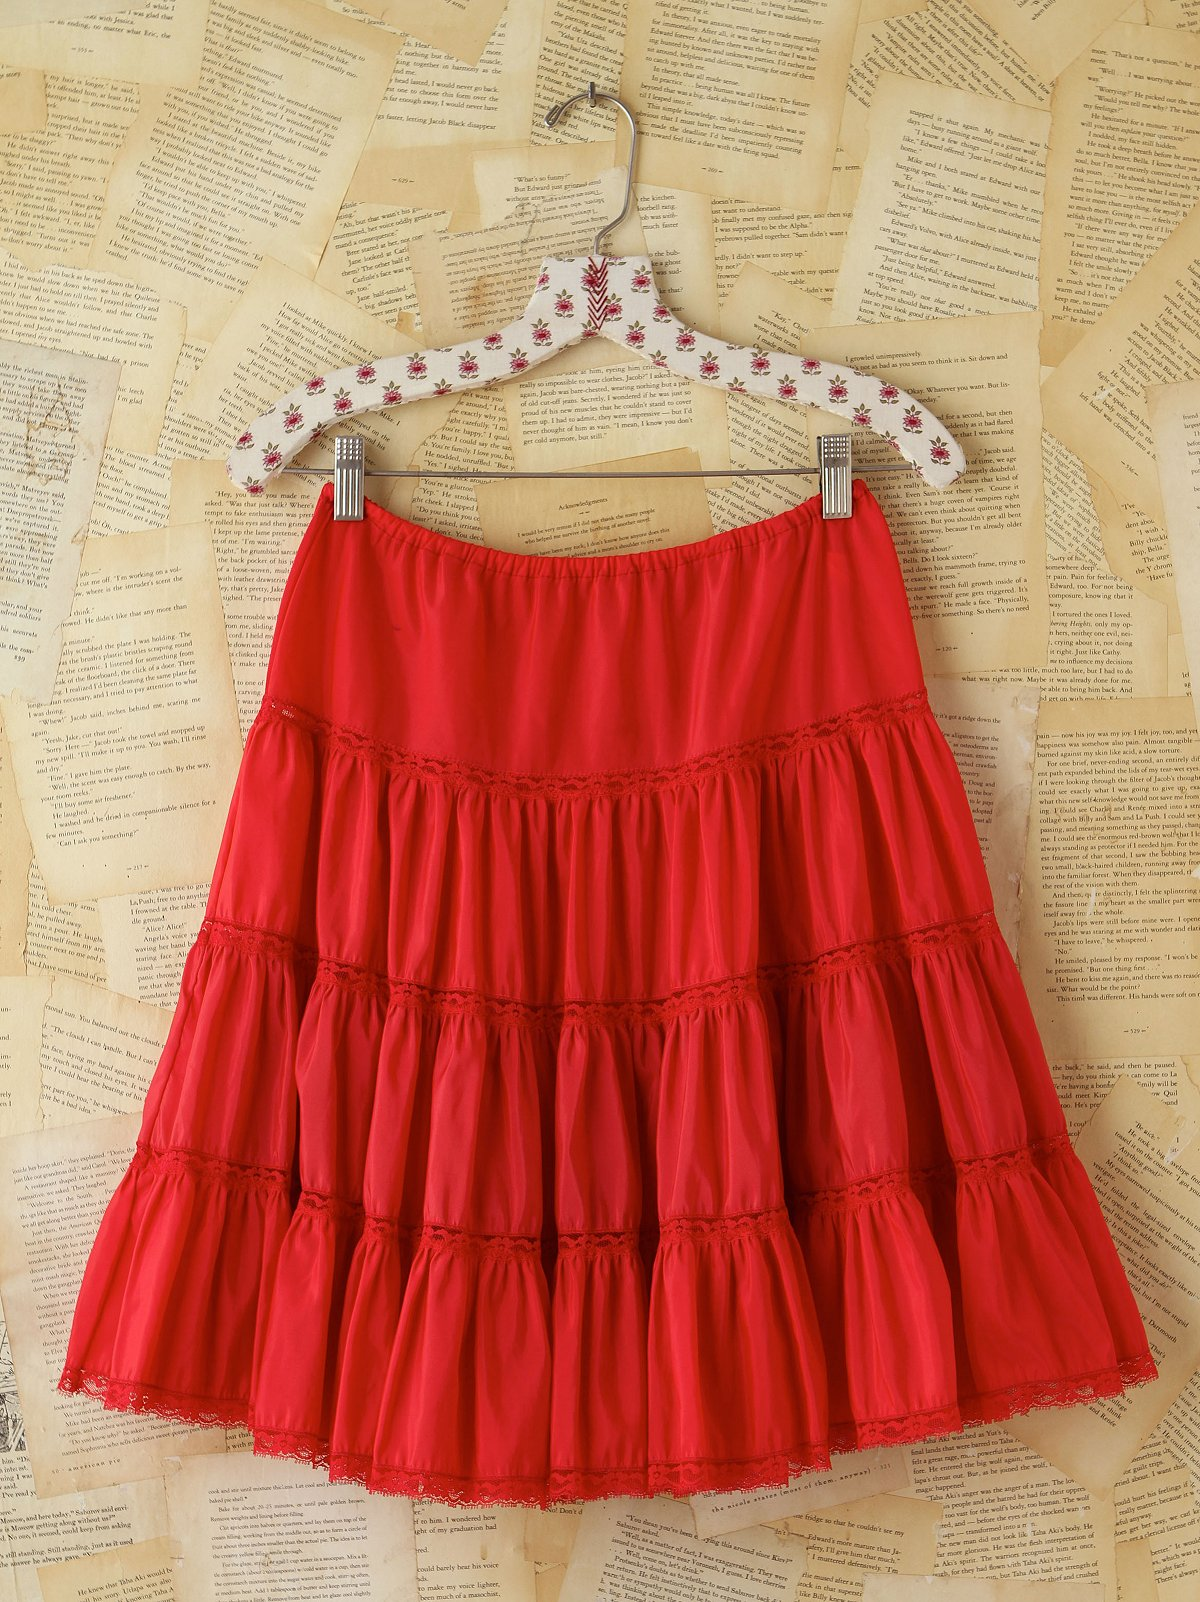 Vintage 1950s Red Tulle Skirt